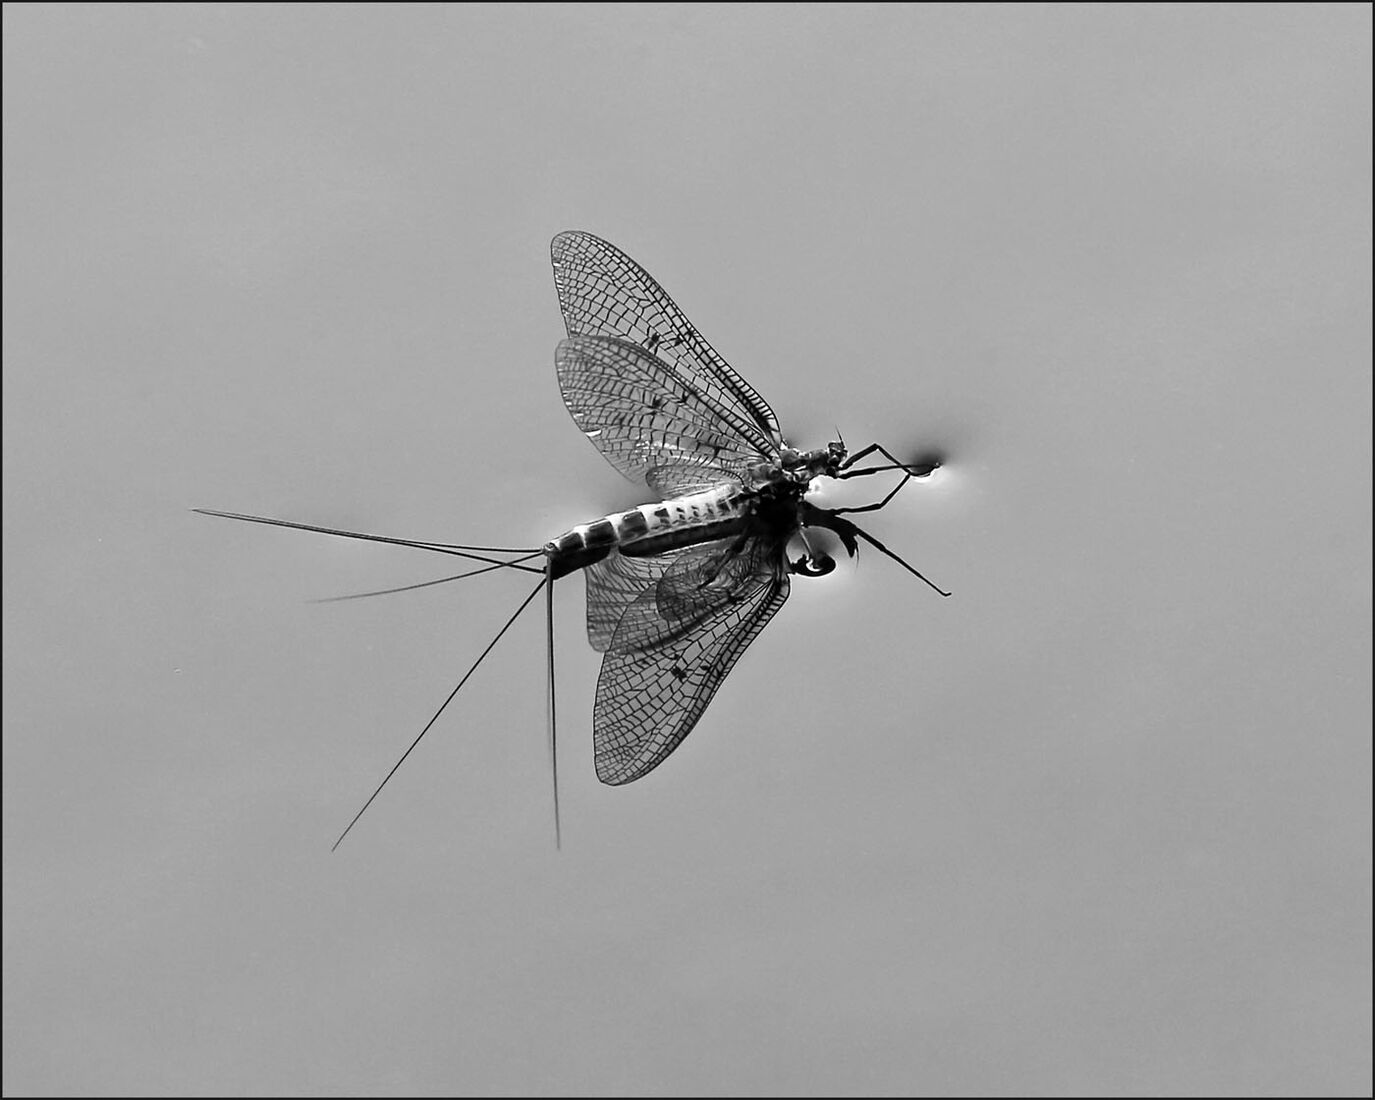 WALKING ON WATER - NEWLY EMERGED MAYFLY